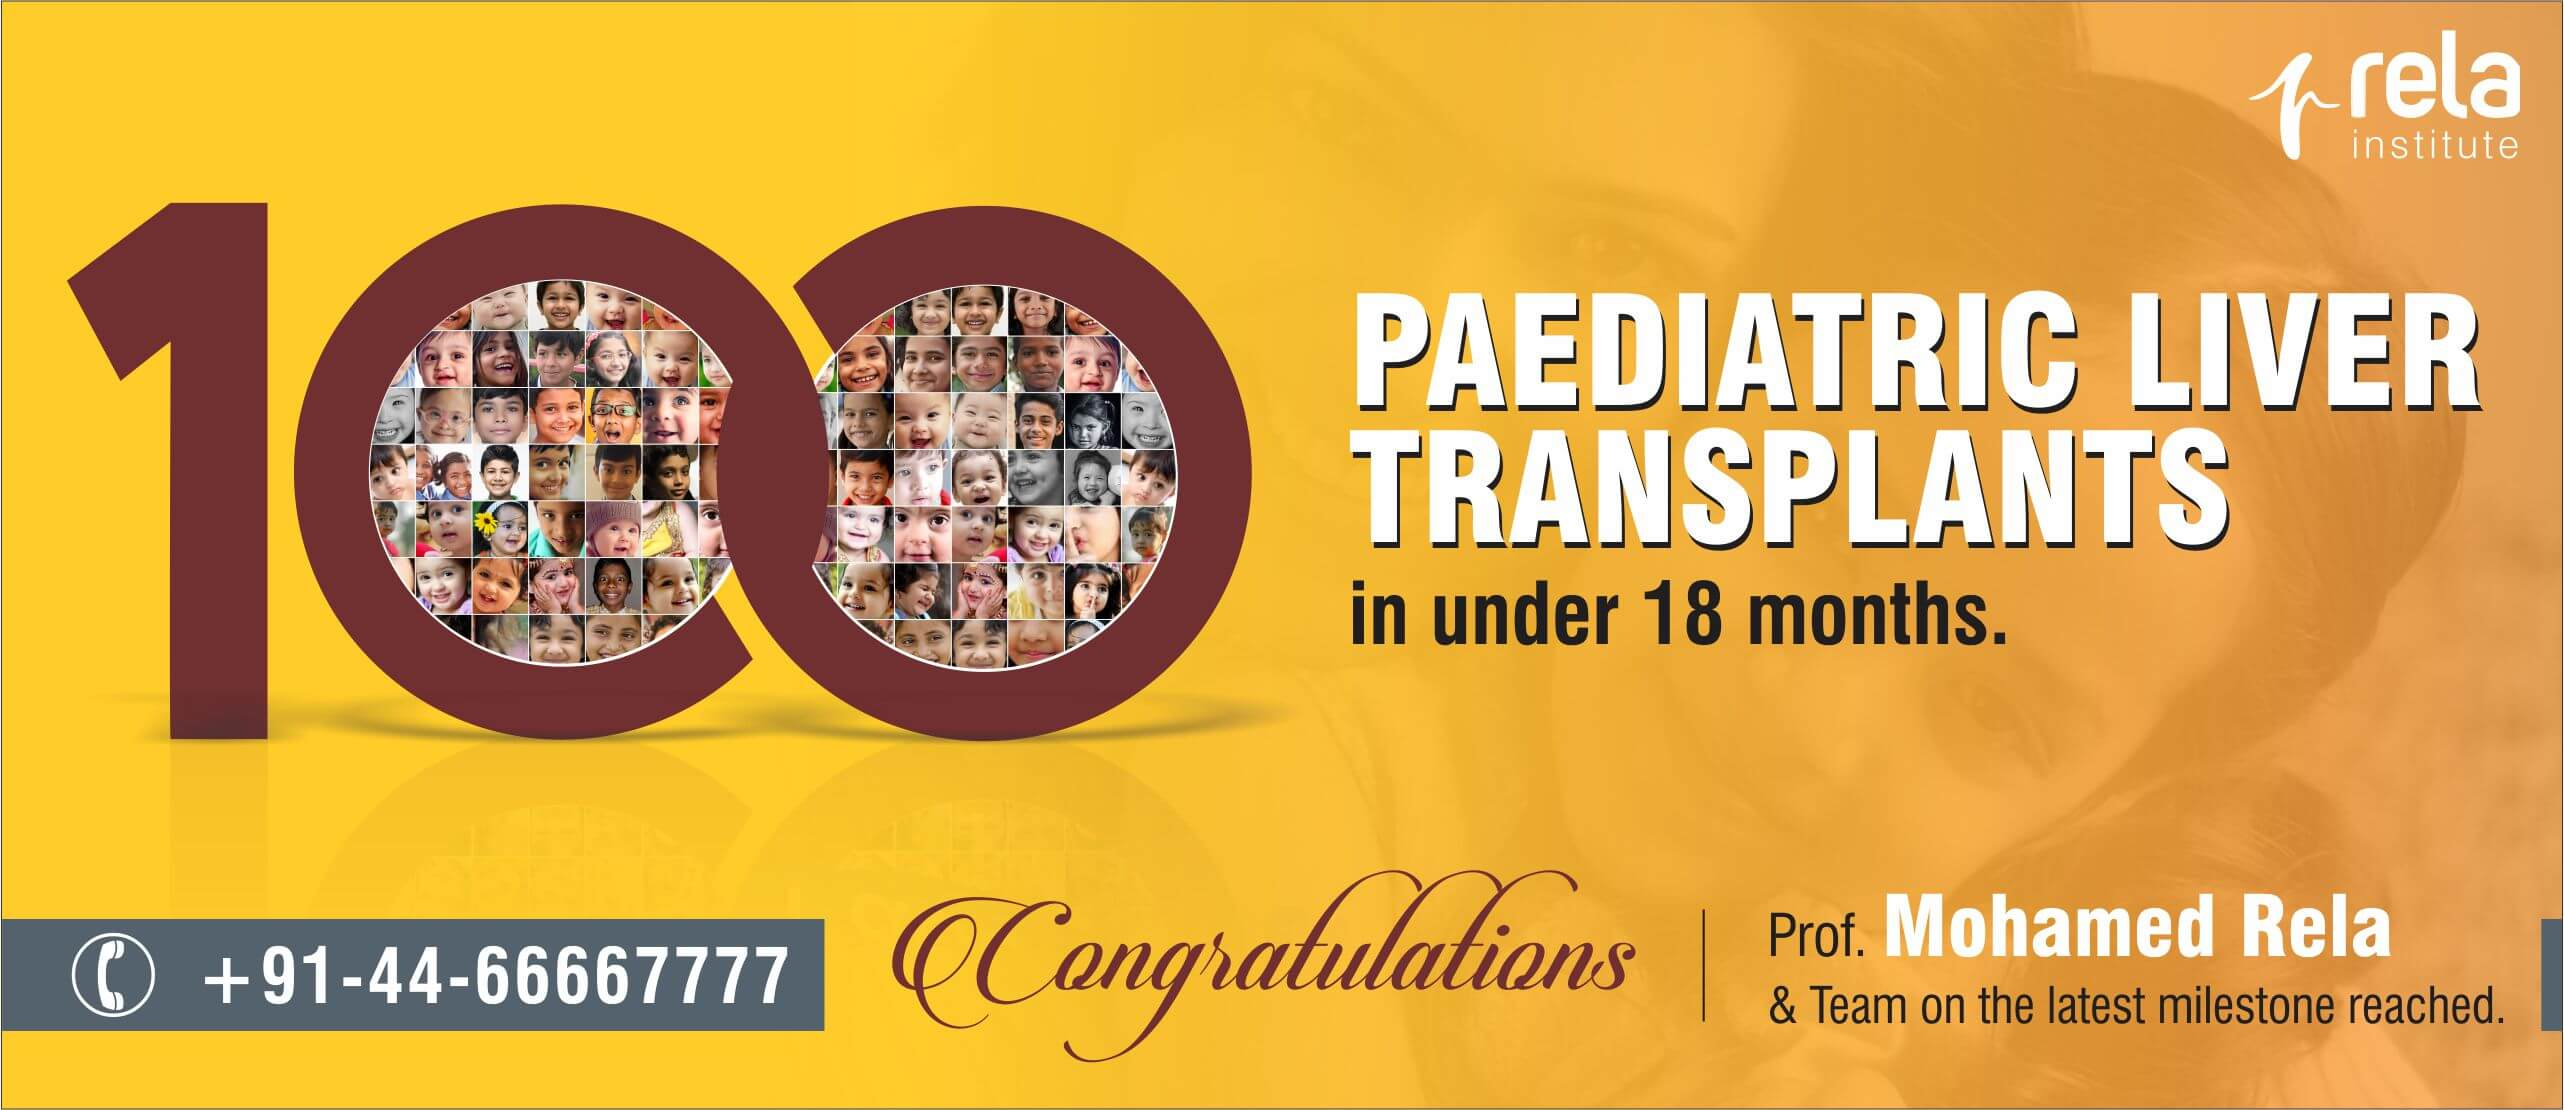 100 Paediatric Liver Transplants